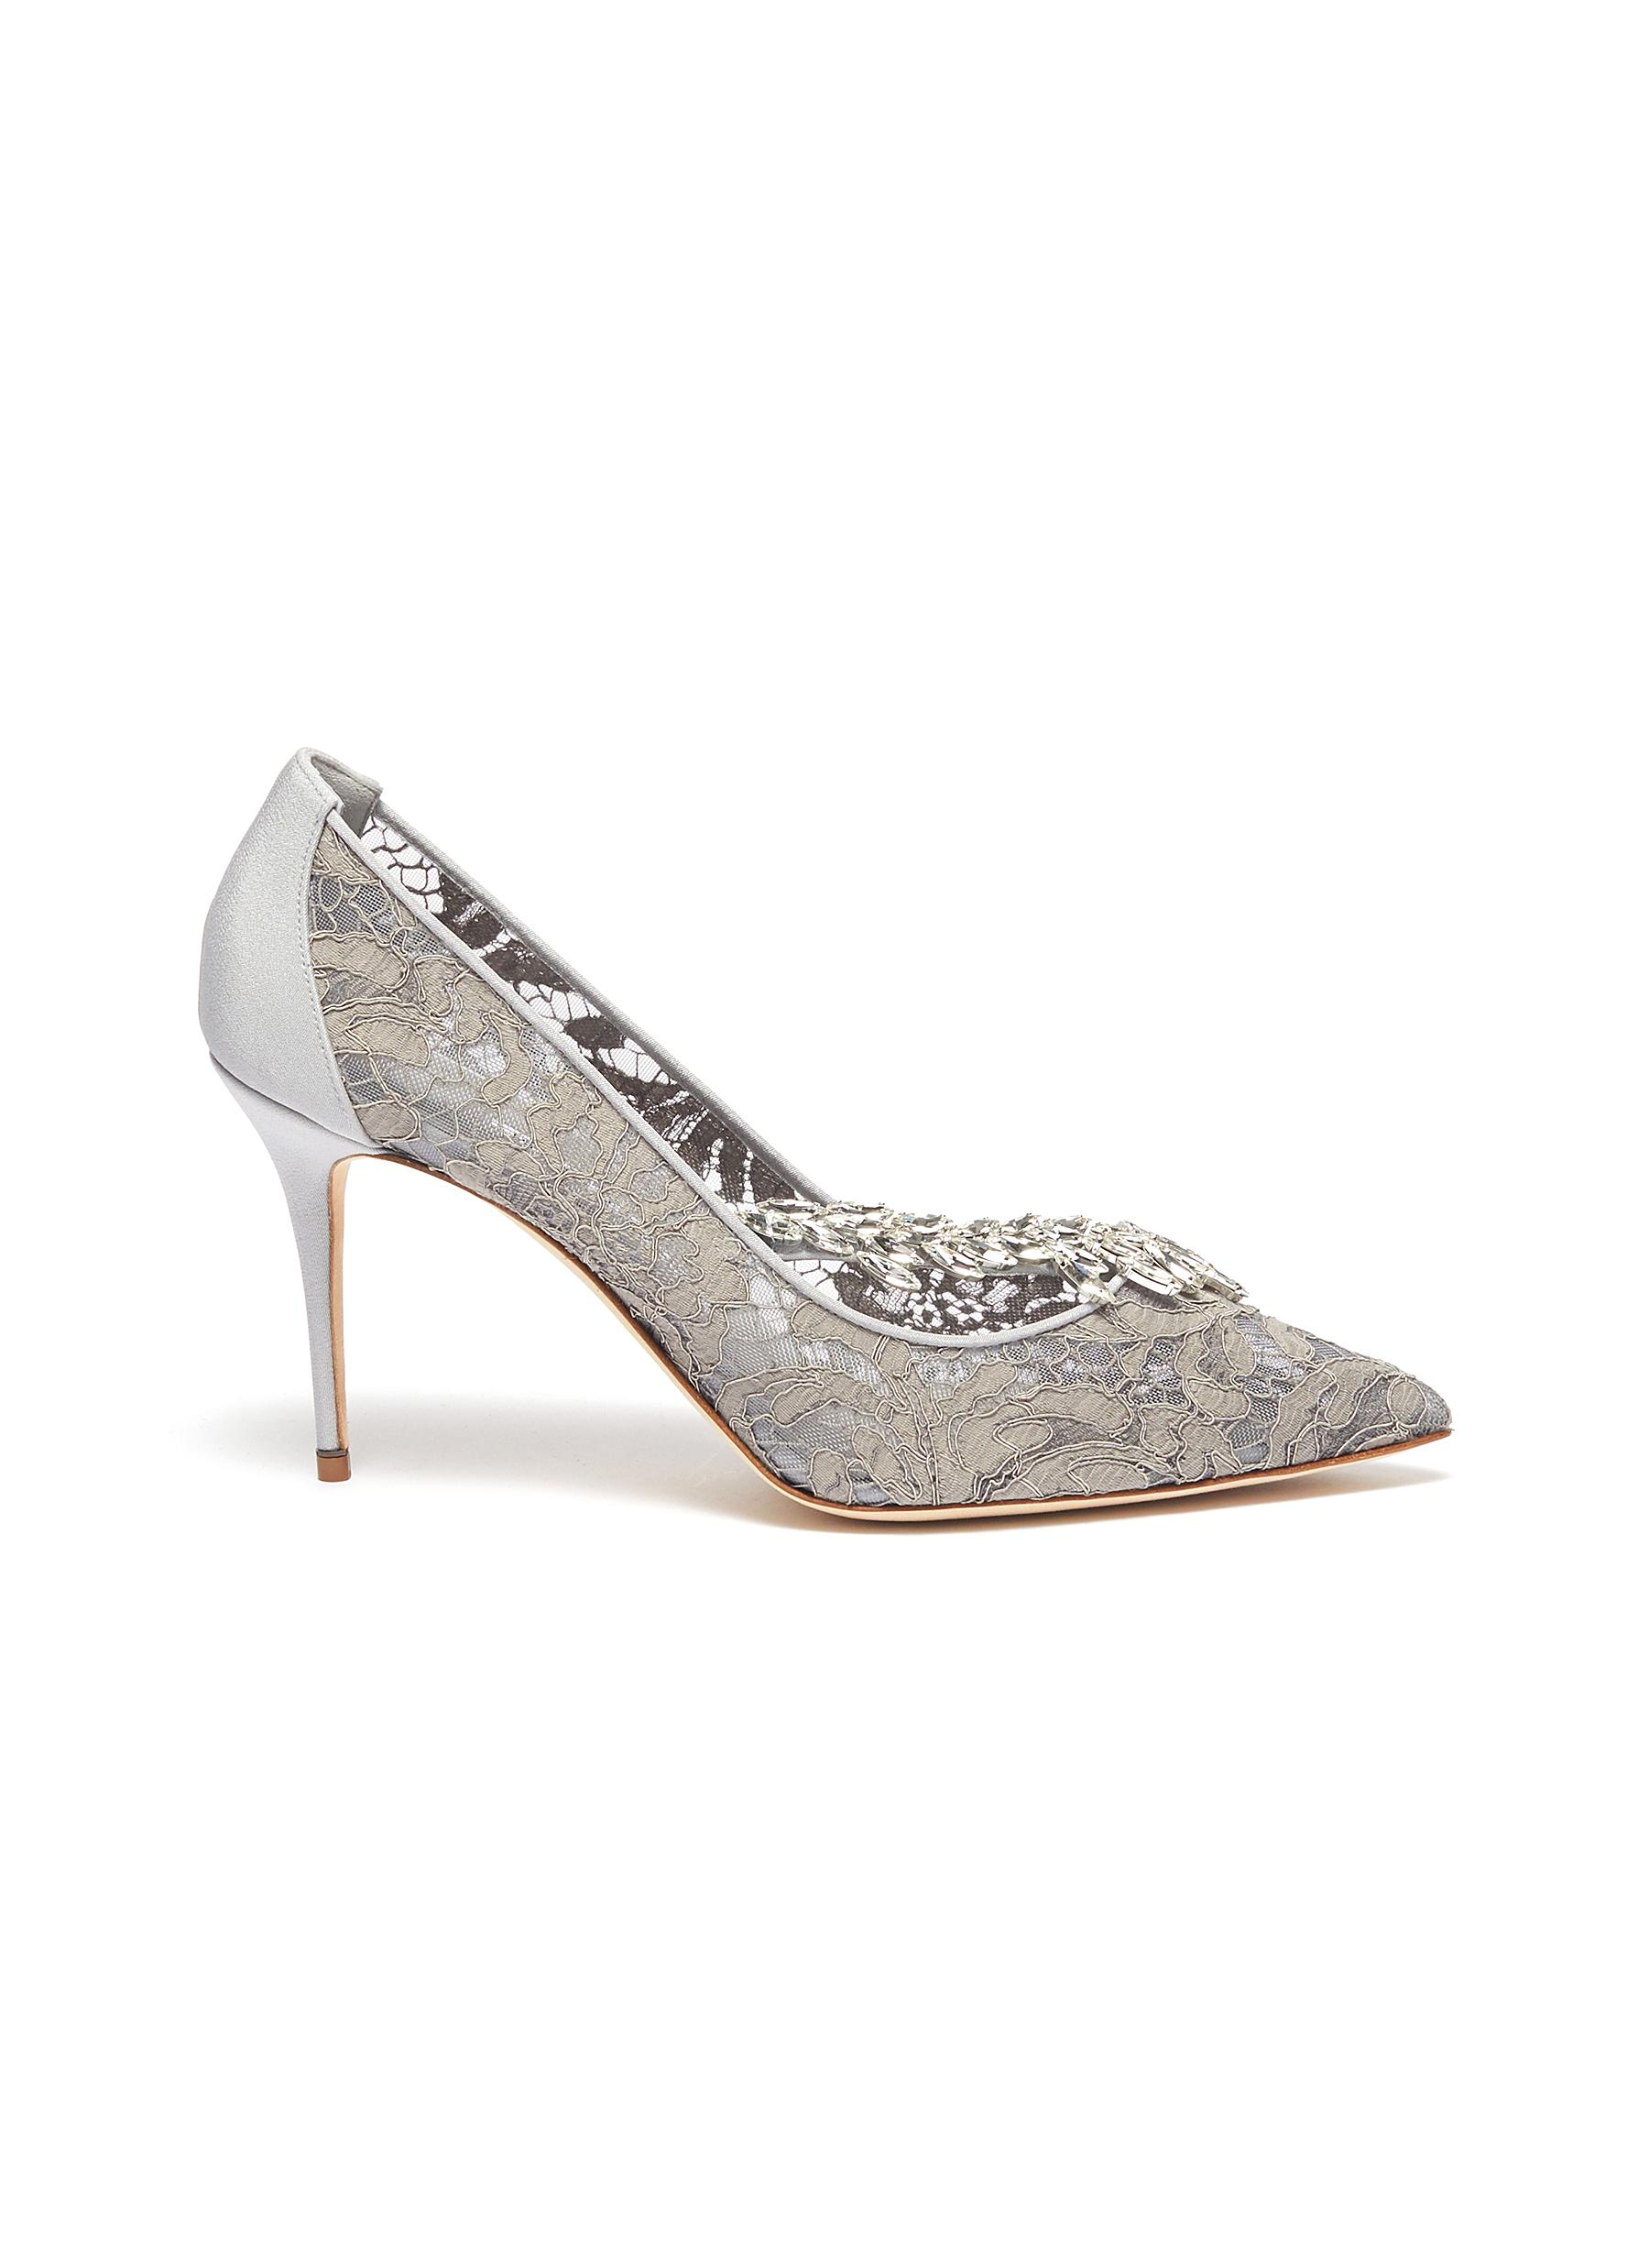 Nadira 90 strass embellished lace pumps by Manolo Blahnik